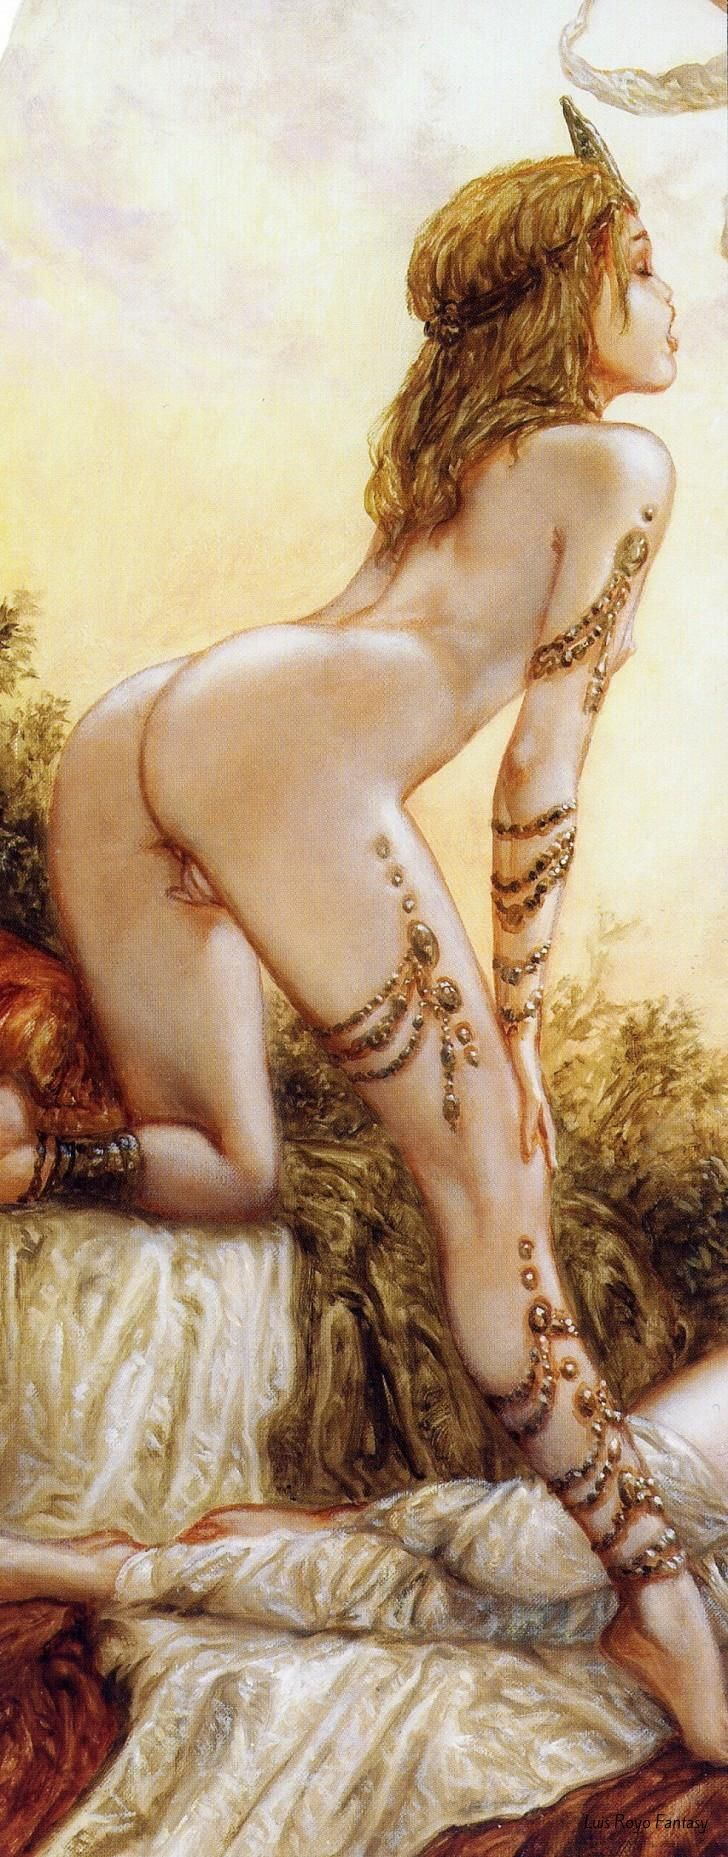 202 best images about LUIS ROYO on Pinterest   Weapons ...